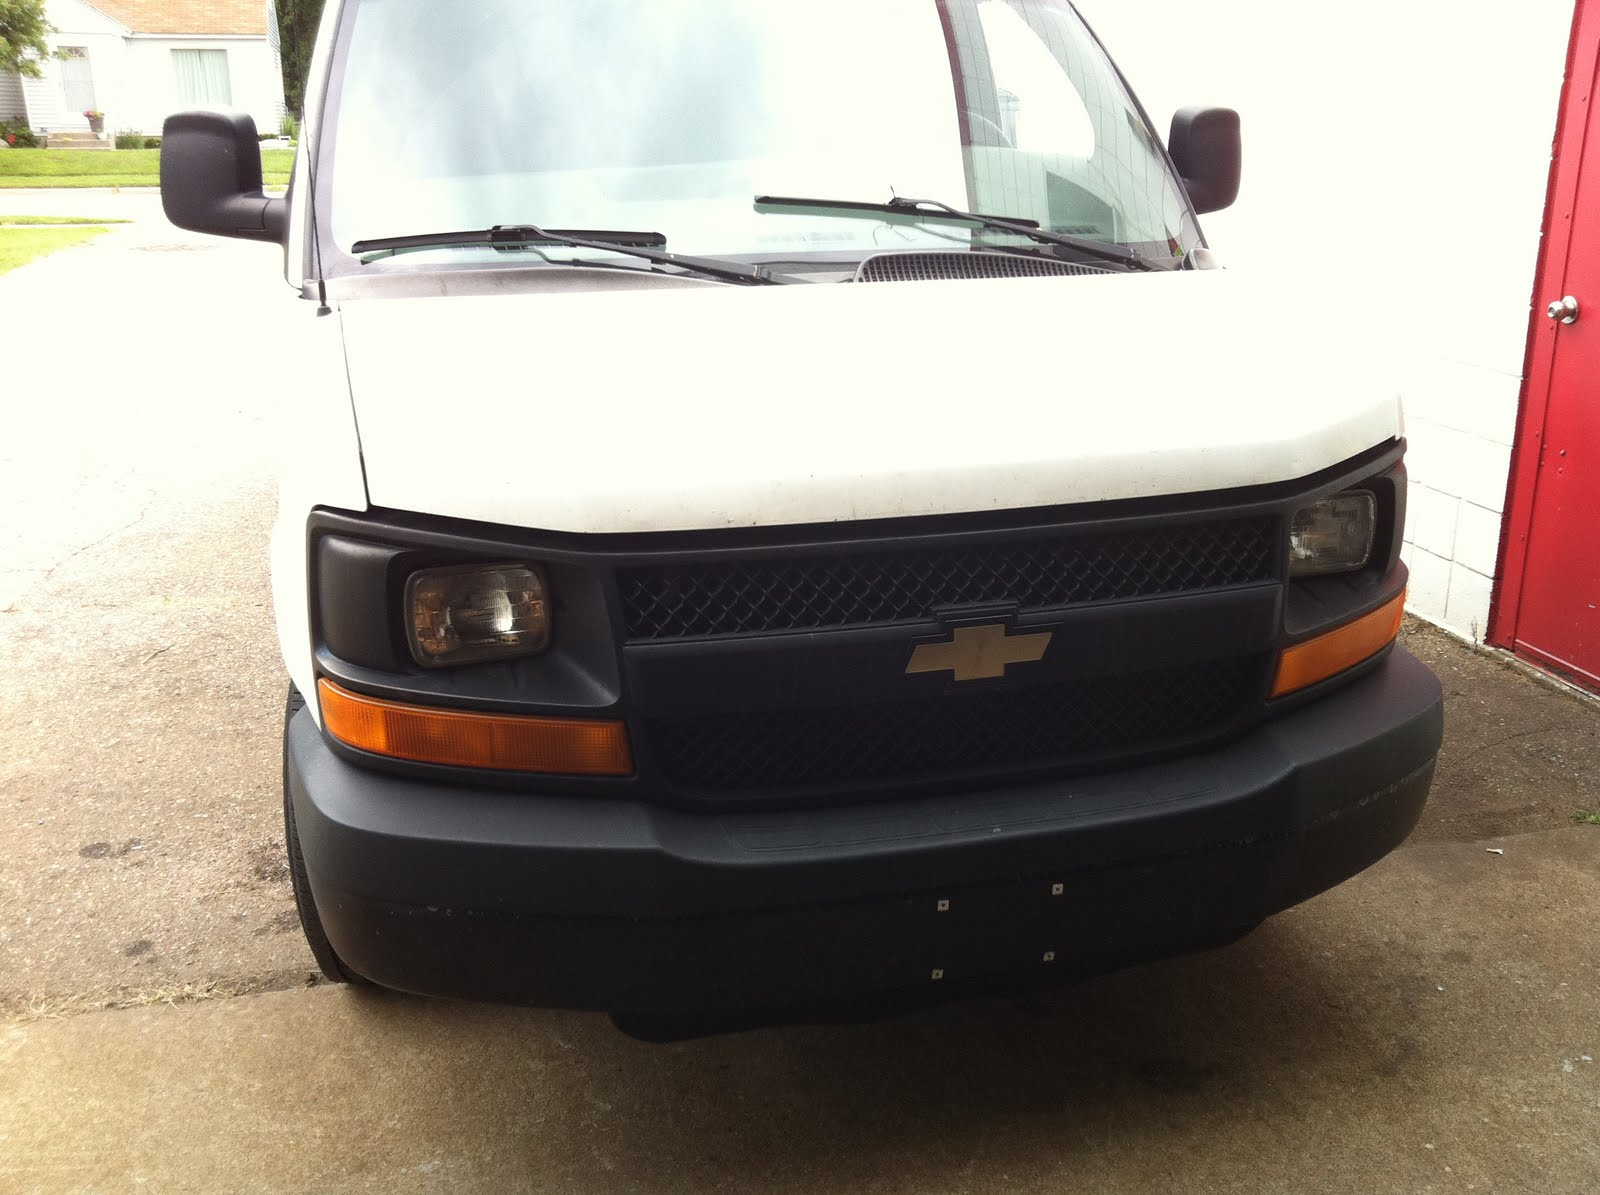 medium resolution of steps must be followed to correctly diagnose any issue with your vehicle today we will look at a 2003 chevrolet express van the air conditioner doesn t